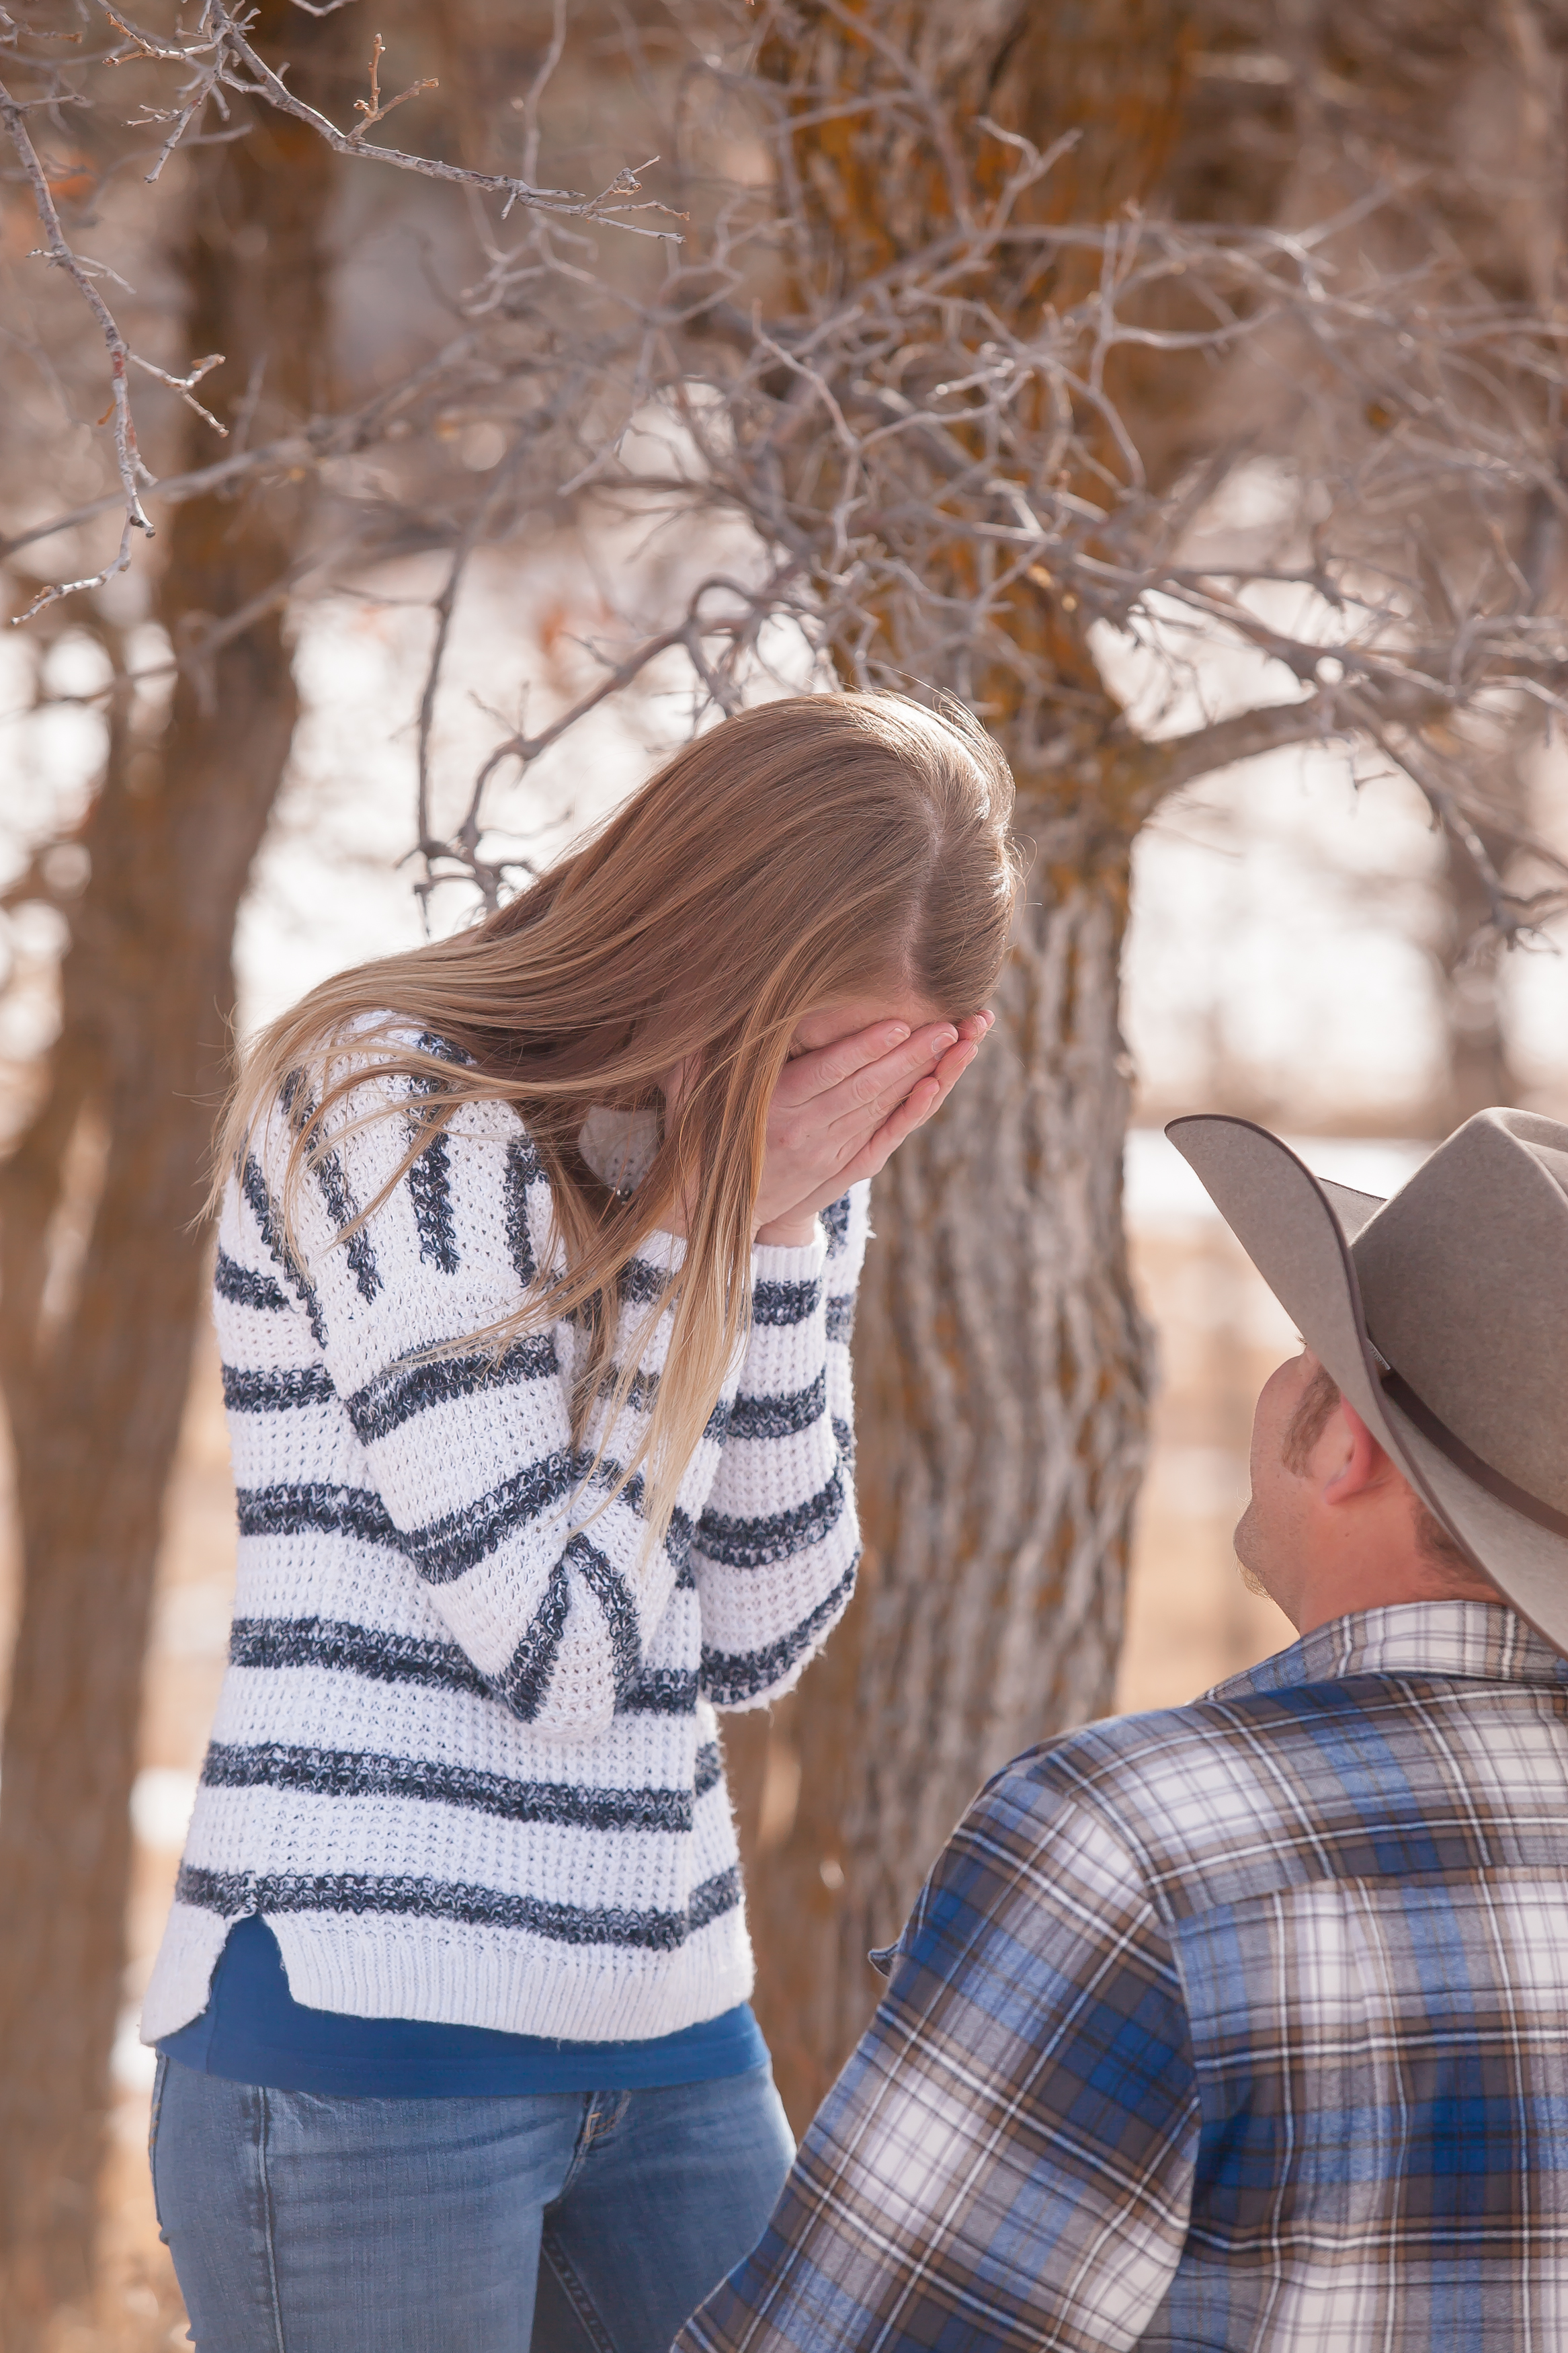 durango colorado proposal cowboy by alexi hubbell photography